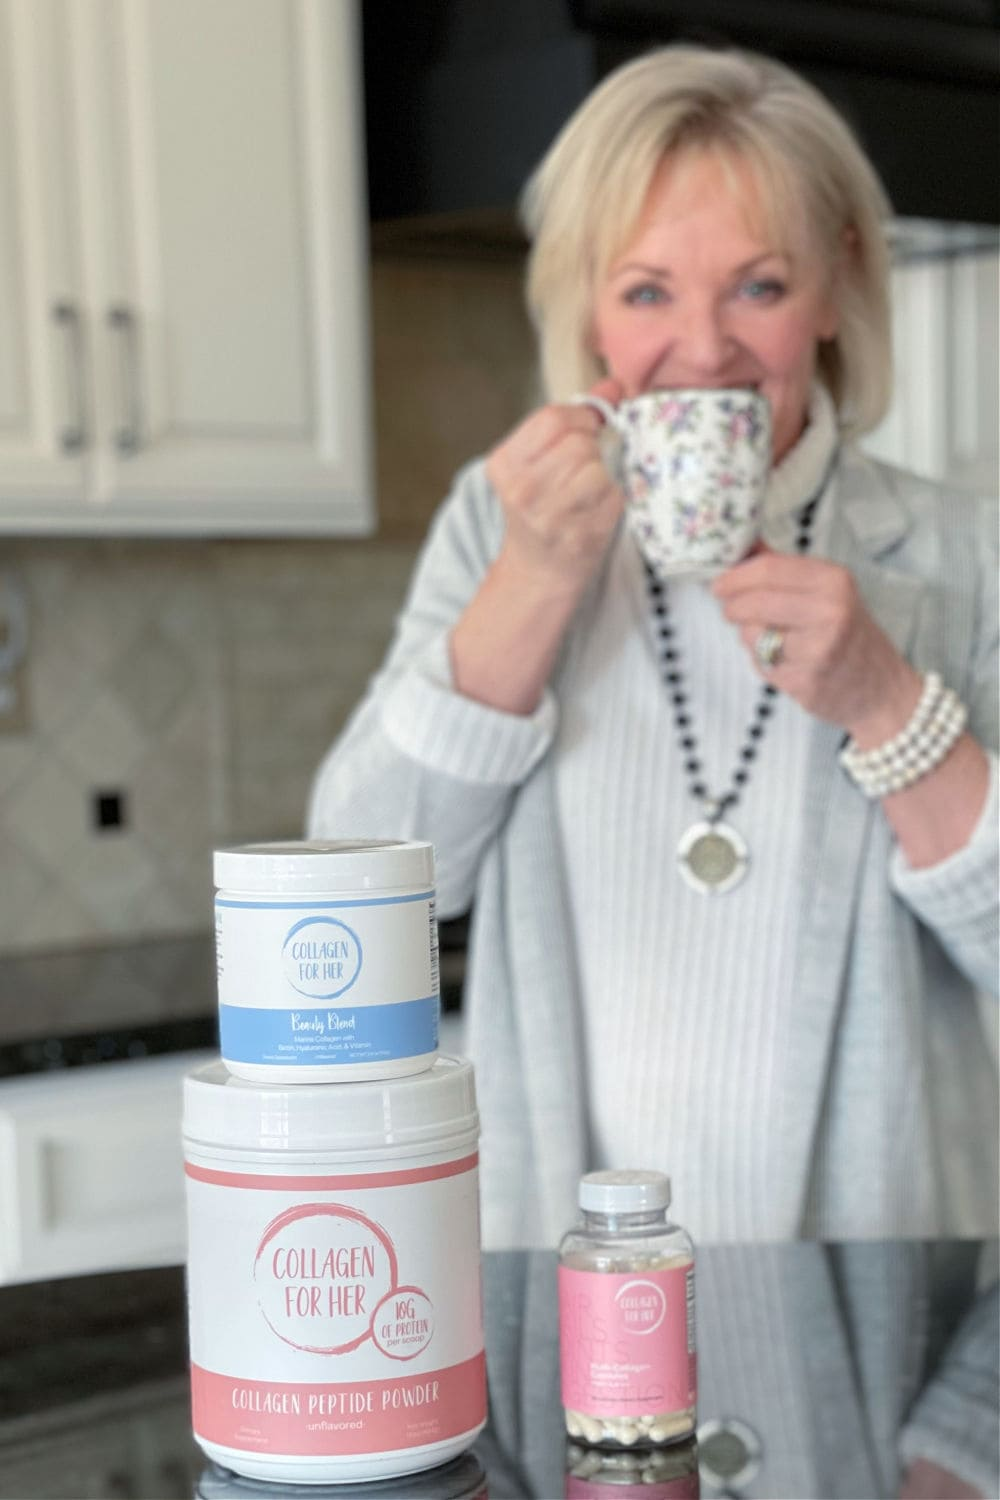 over 50 blogger jennifer connolly of a well styled life drinking tea with collagen powder added